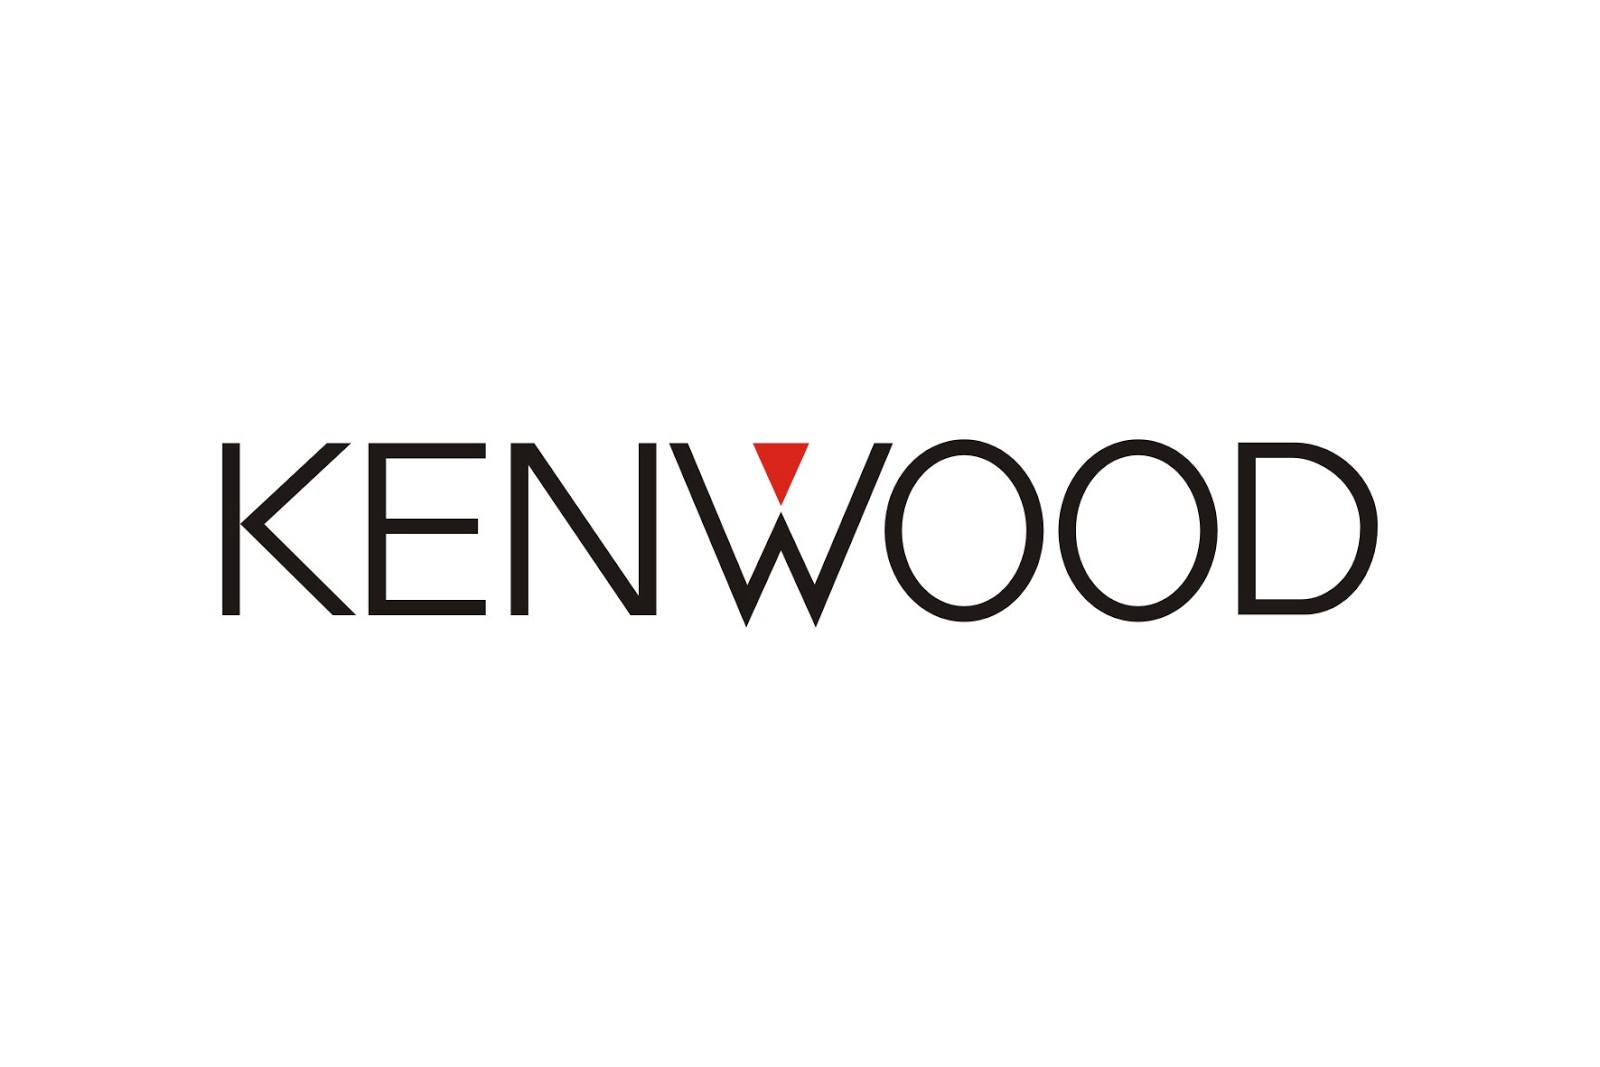 Kenwood Logo Wallpaper